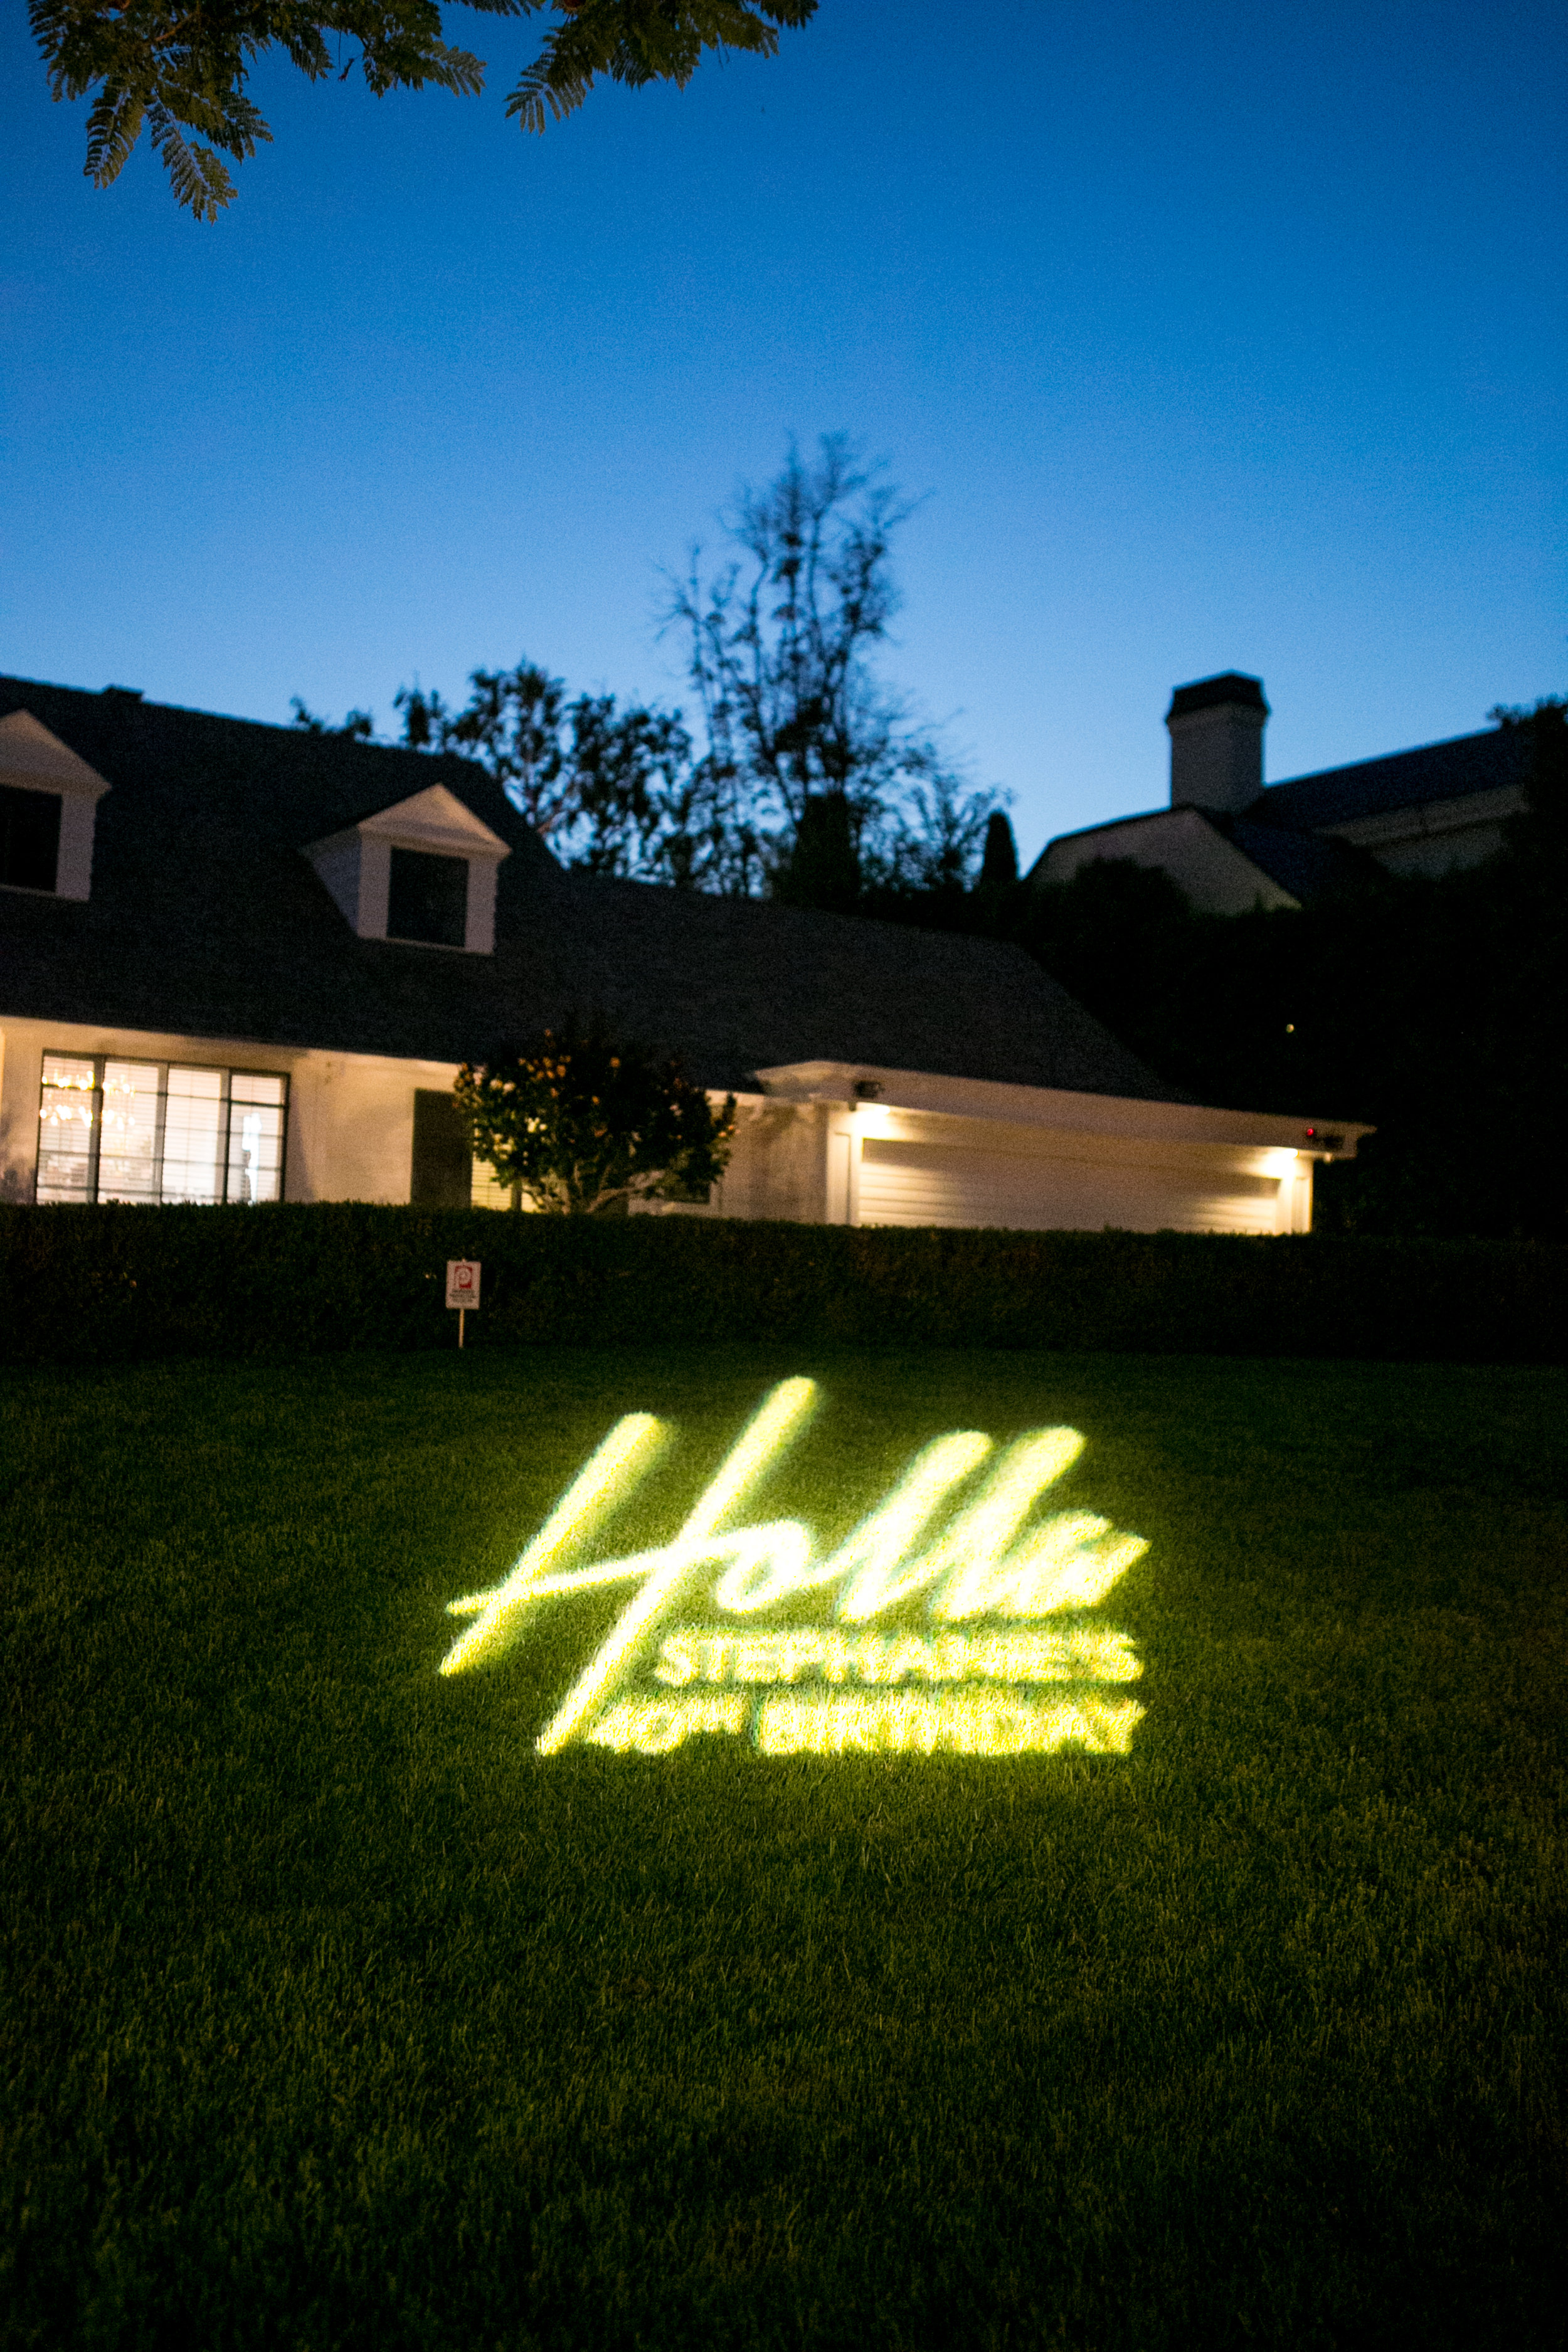 PRIVATE RESIDENCE, BEVERLY HILLS 40TH BIRTHDAY